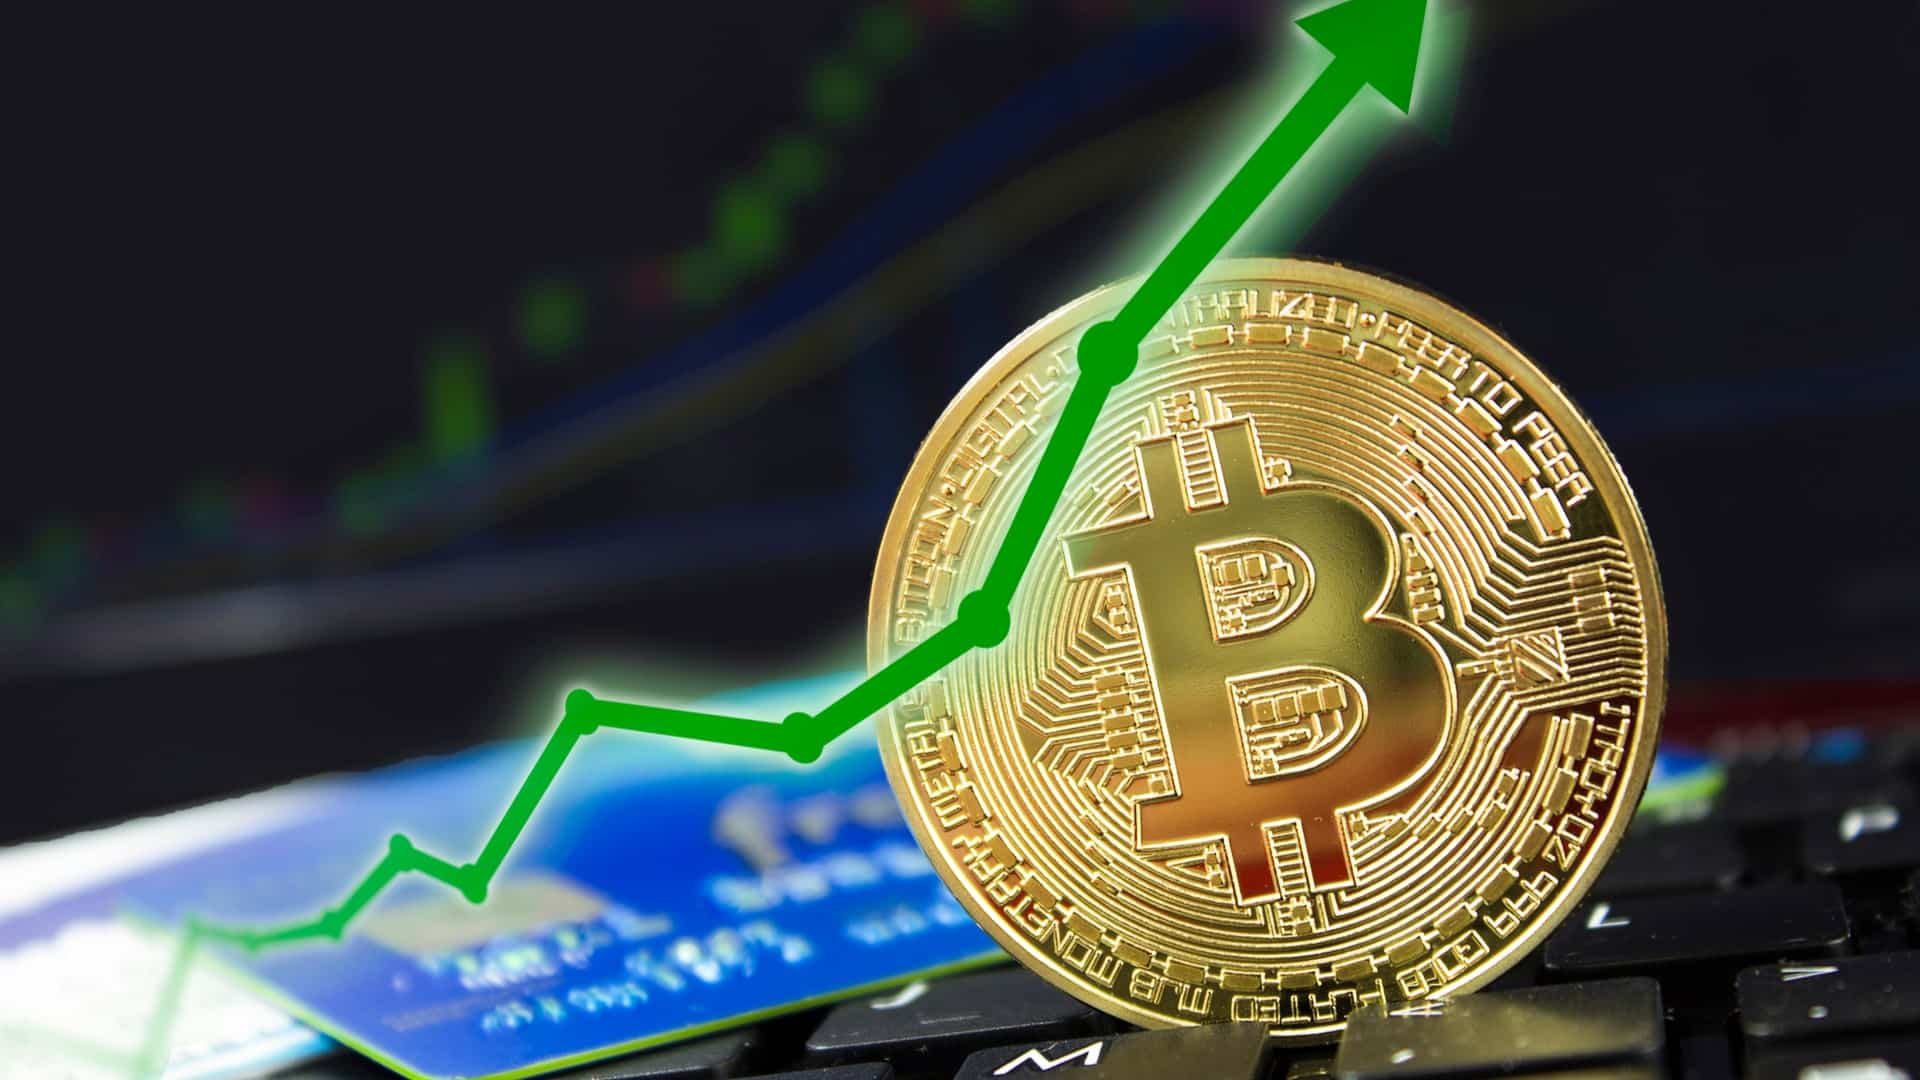 BTC enters the final phase of the bull market, then comes a tough correction